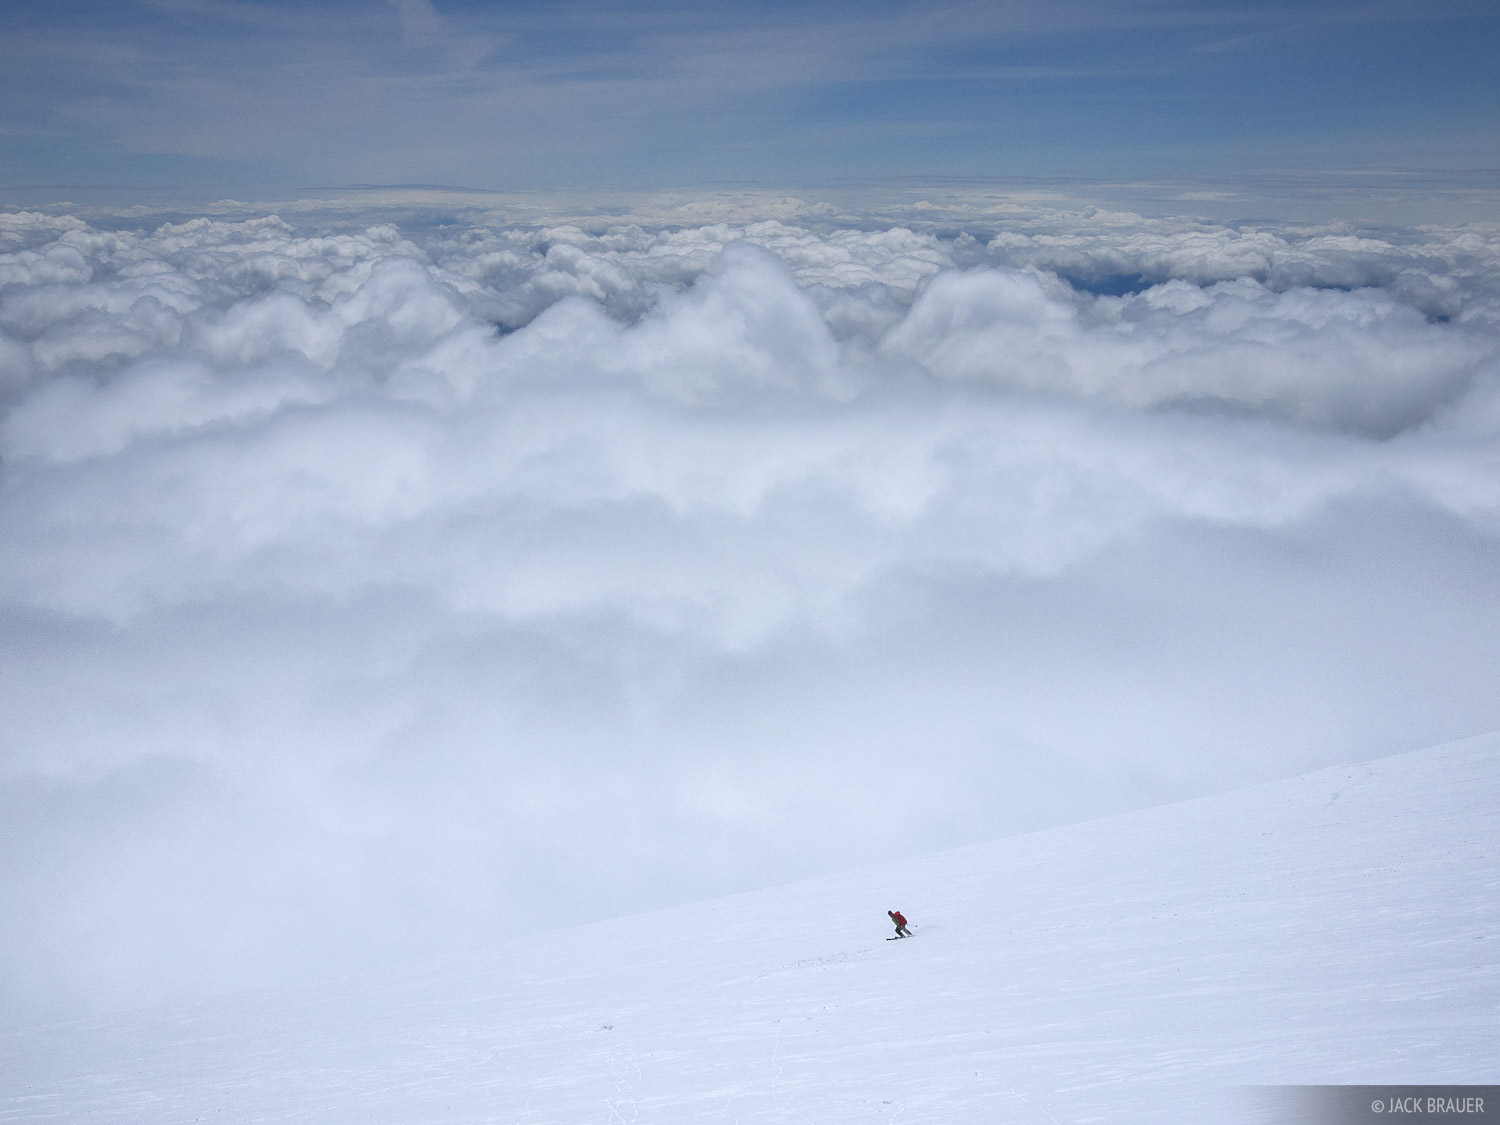 Skiing above the clouds on Mt. Adams, May. Skiier: Scott McCurdy.